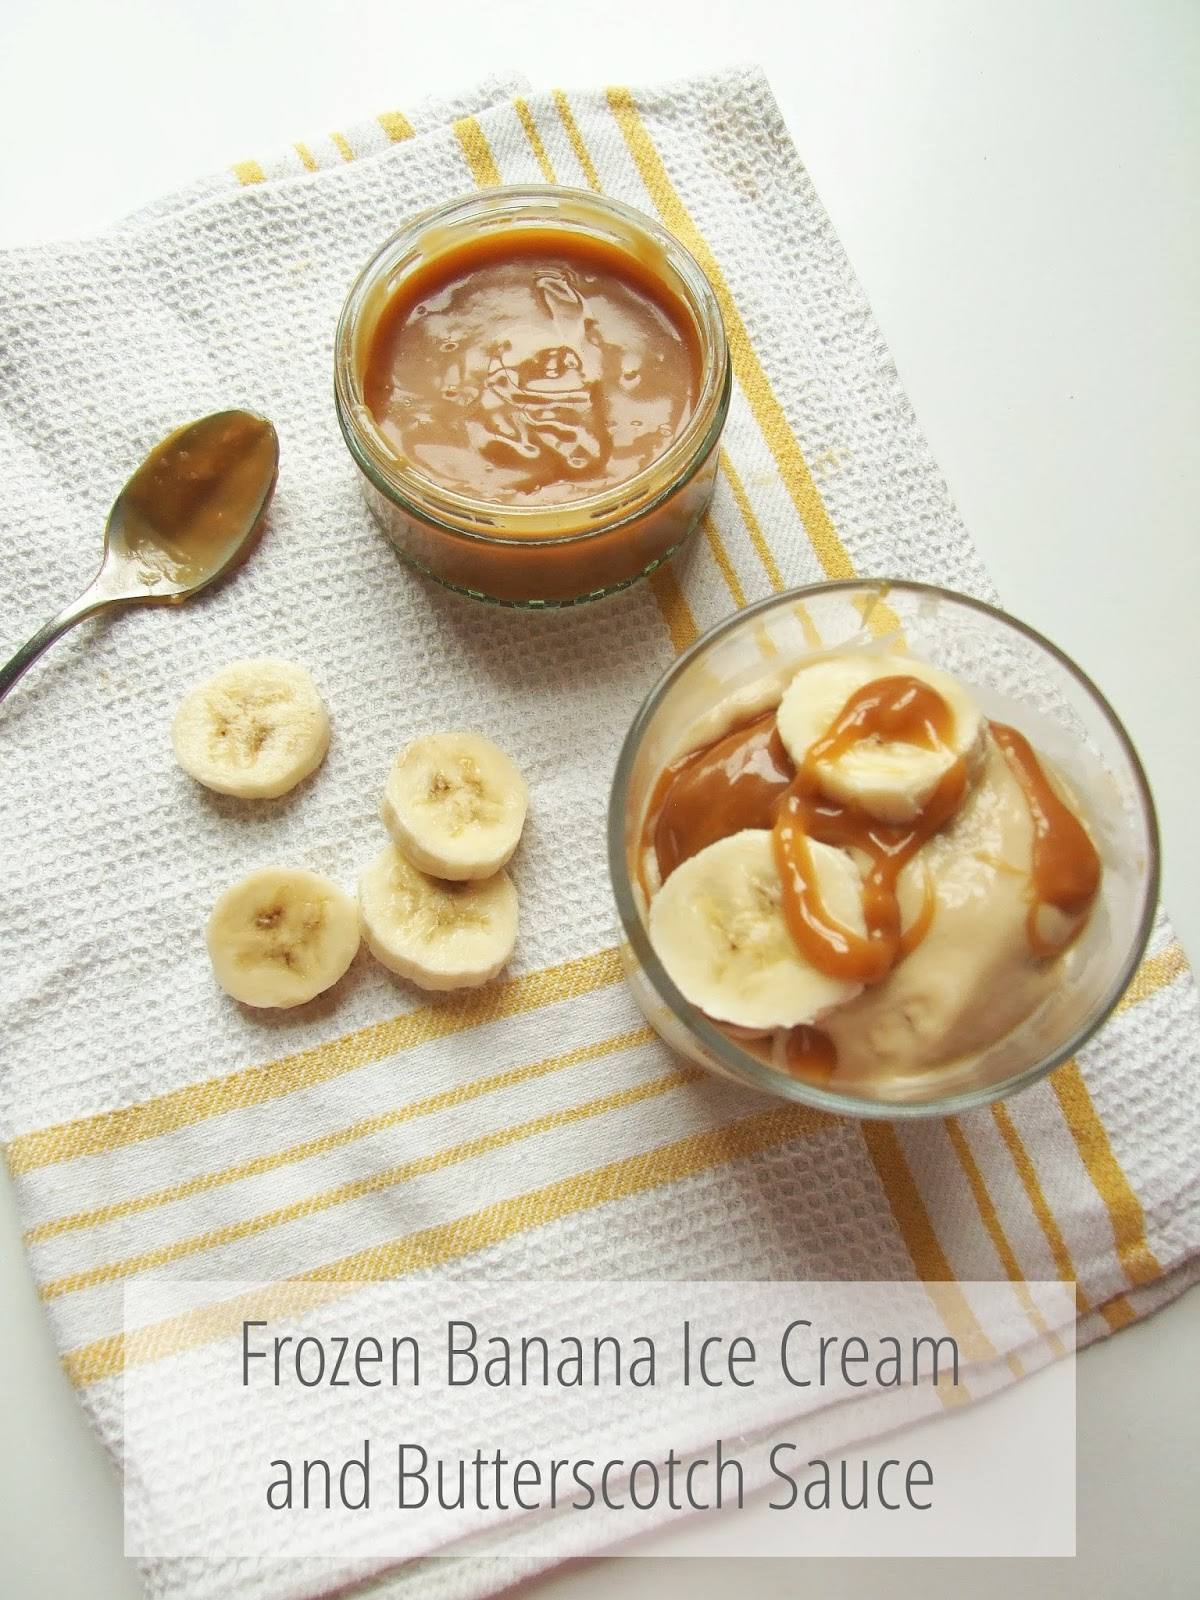 ... Beauty: Easy Peasy Frozen Banana Ice Cream and Butterscotch Sauce